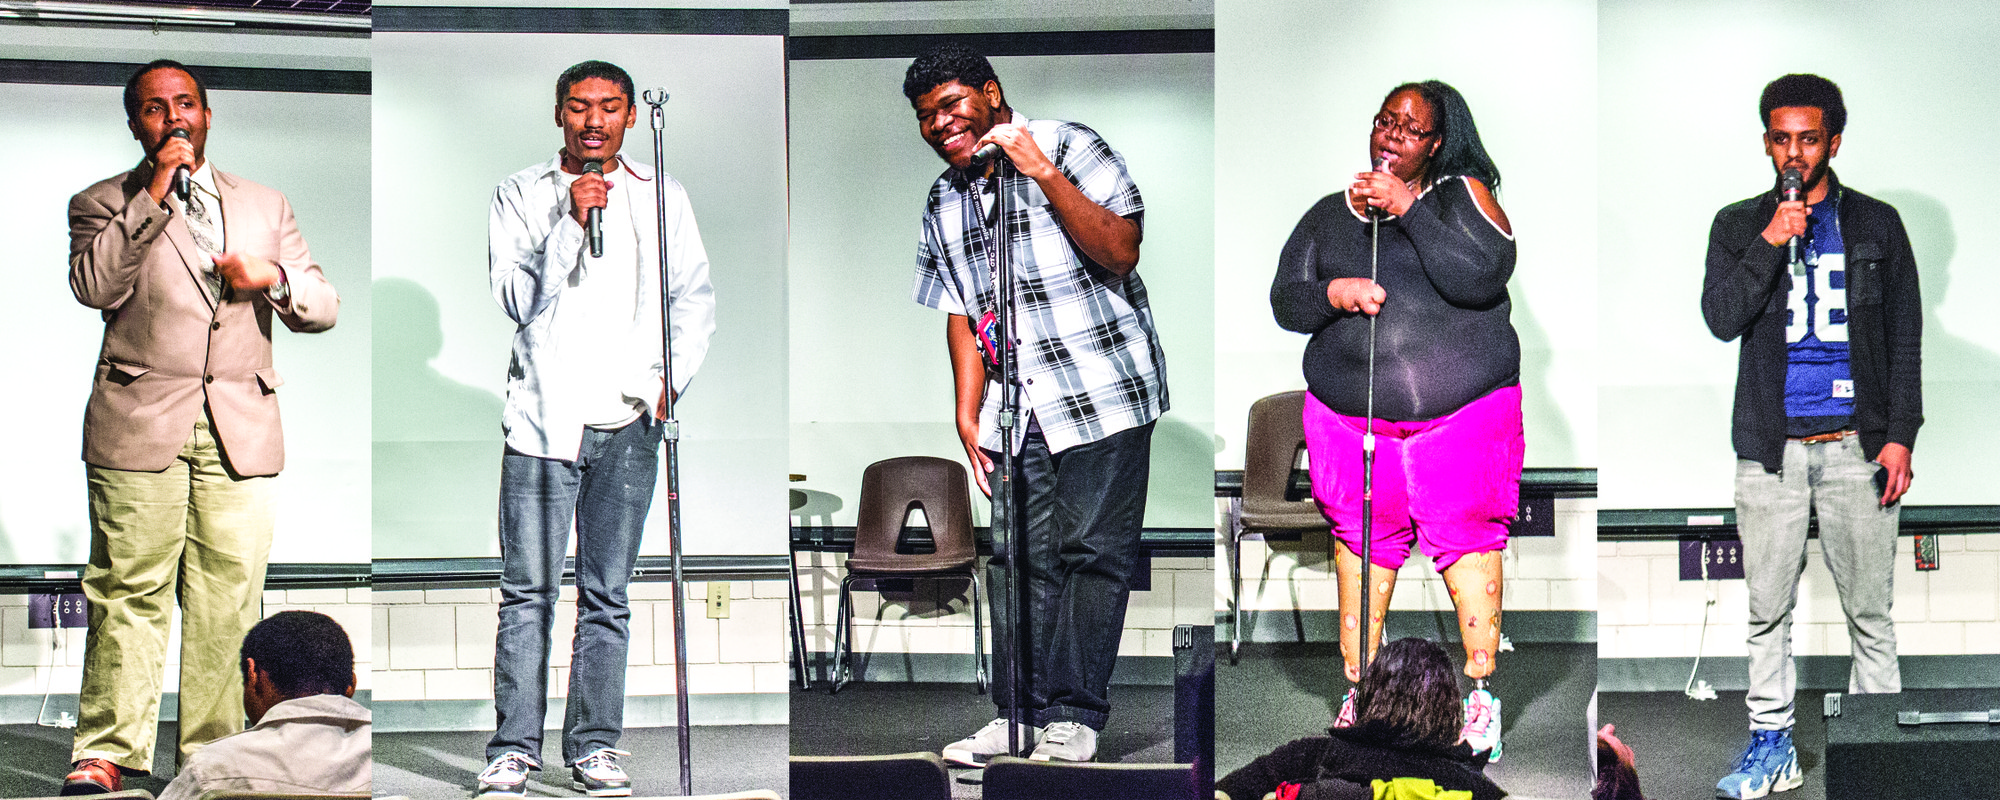 Minneapolis, MN, 11/22/2016, Students perform at the MCTC Talent Show, from left to right: Robel